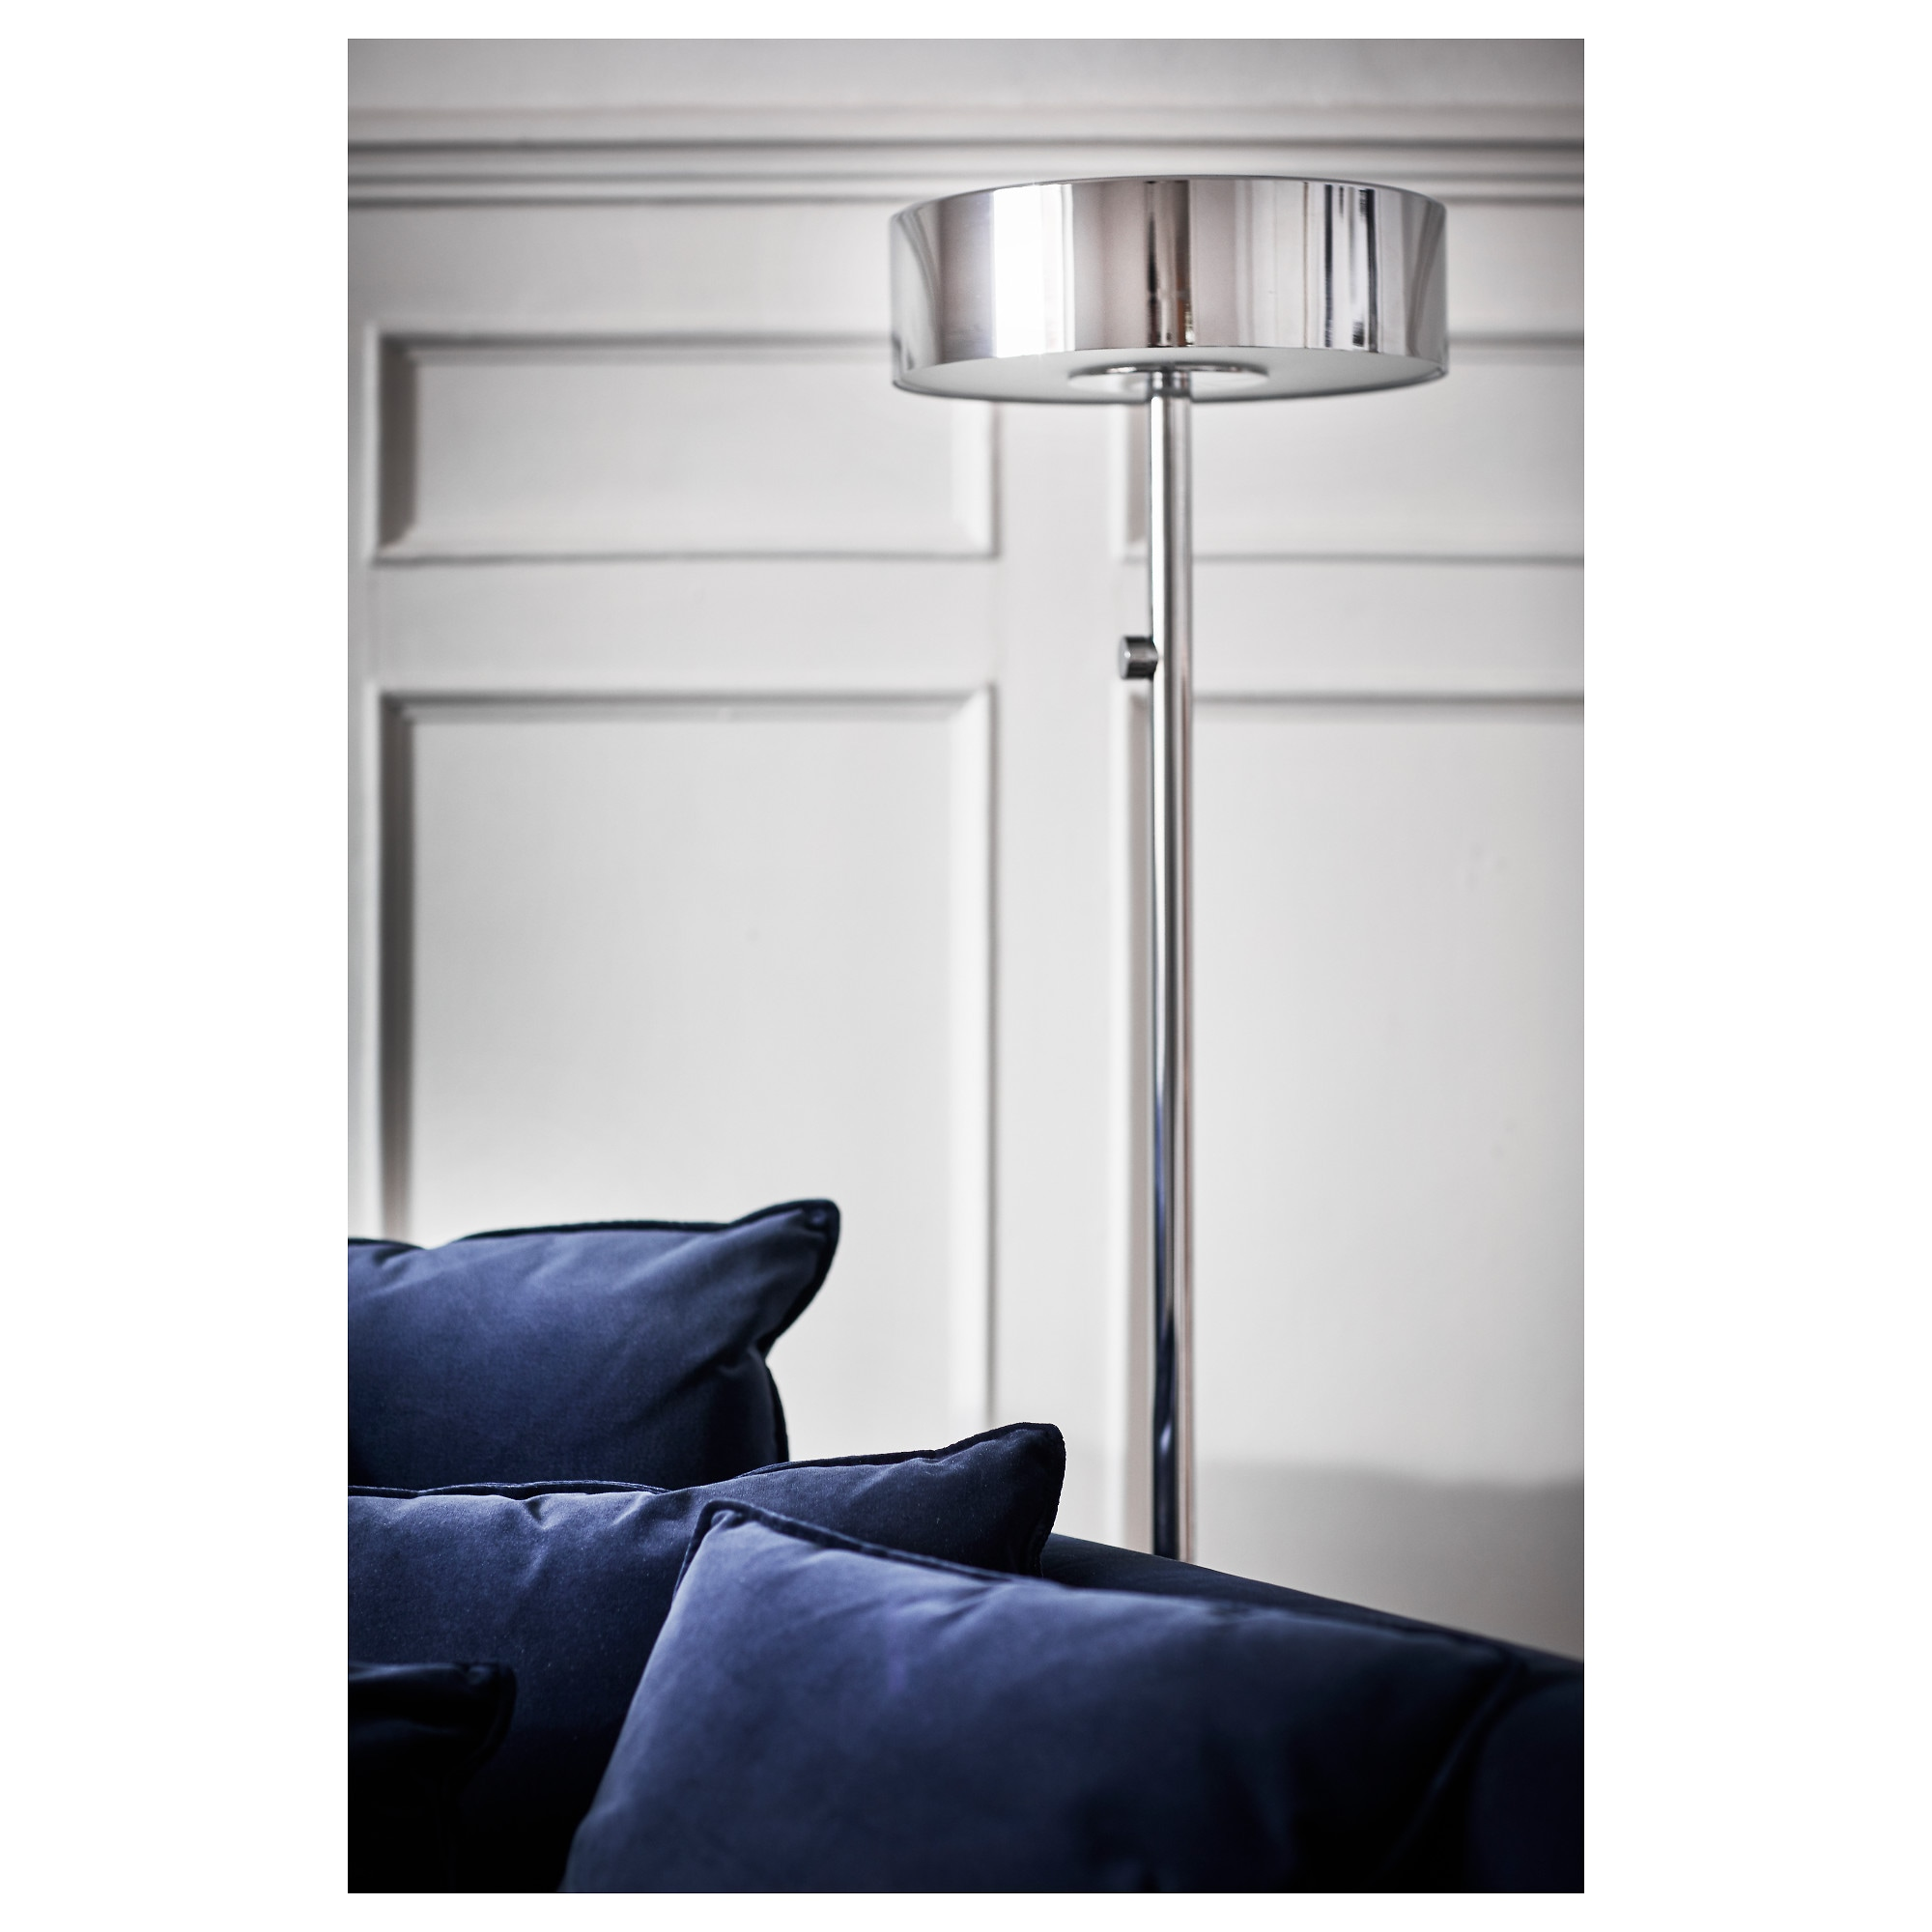 STOCKHOLM 2017 Floor lamp with LED bulb IKEA